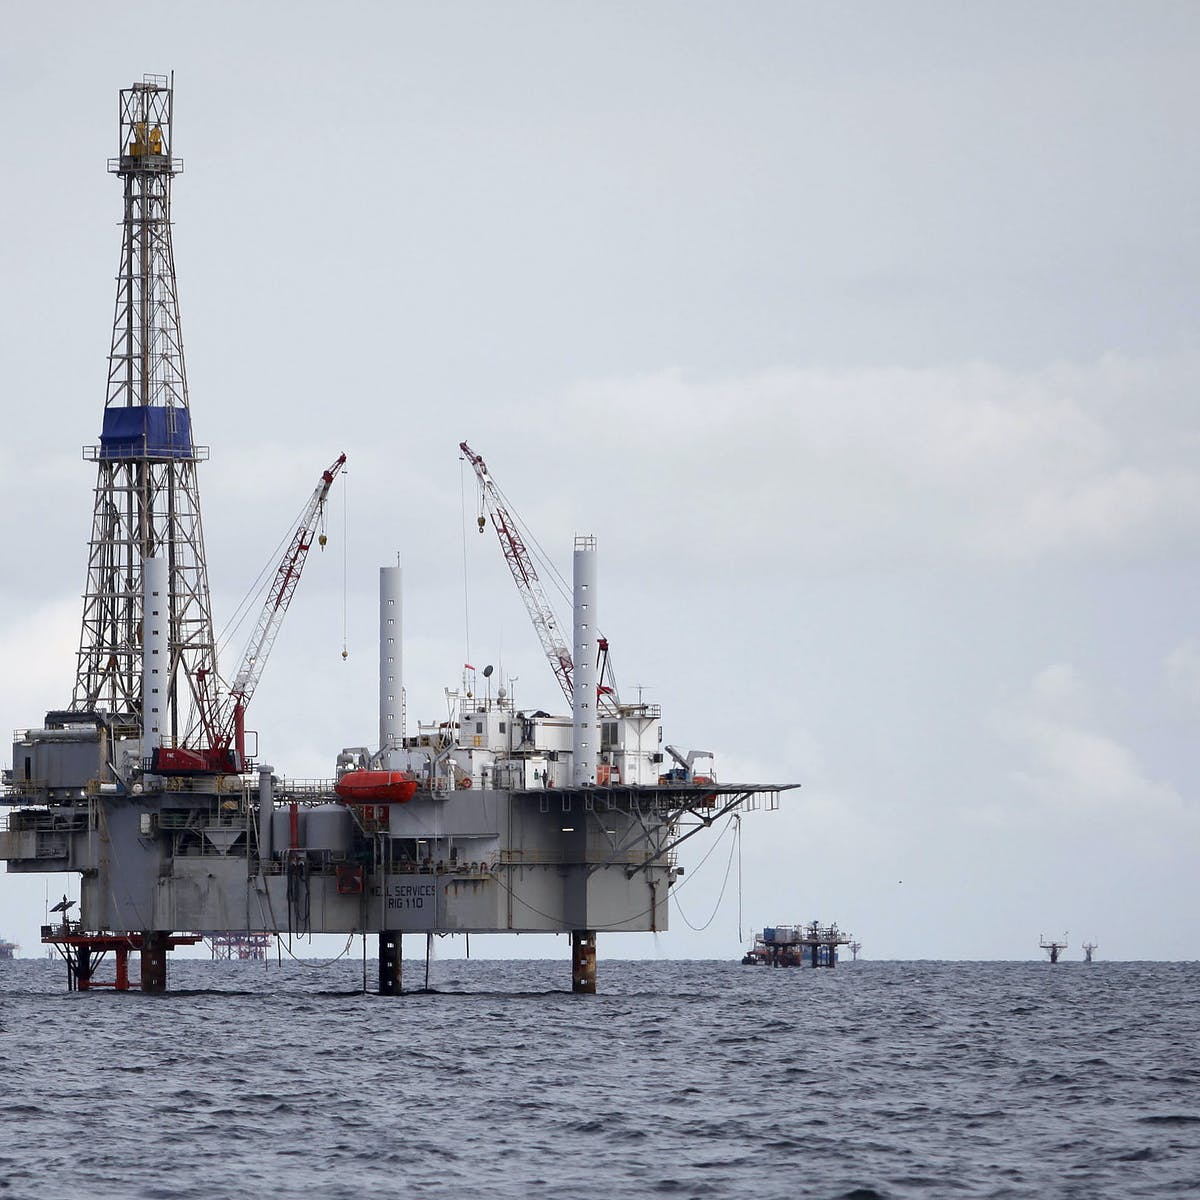 Guyana, one of South America's poorest countries, struck oil